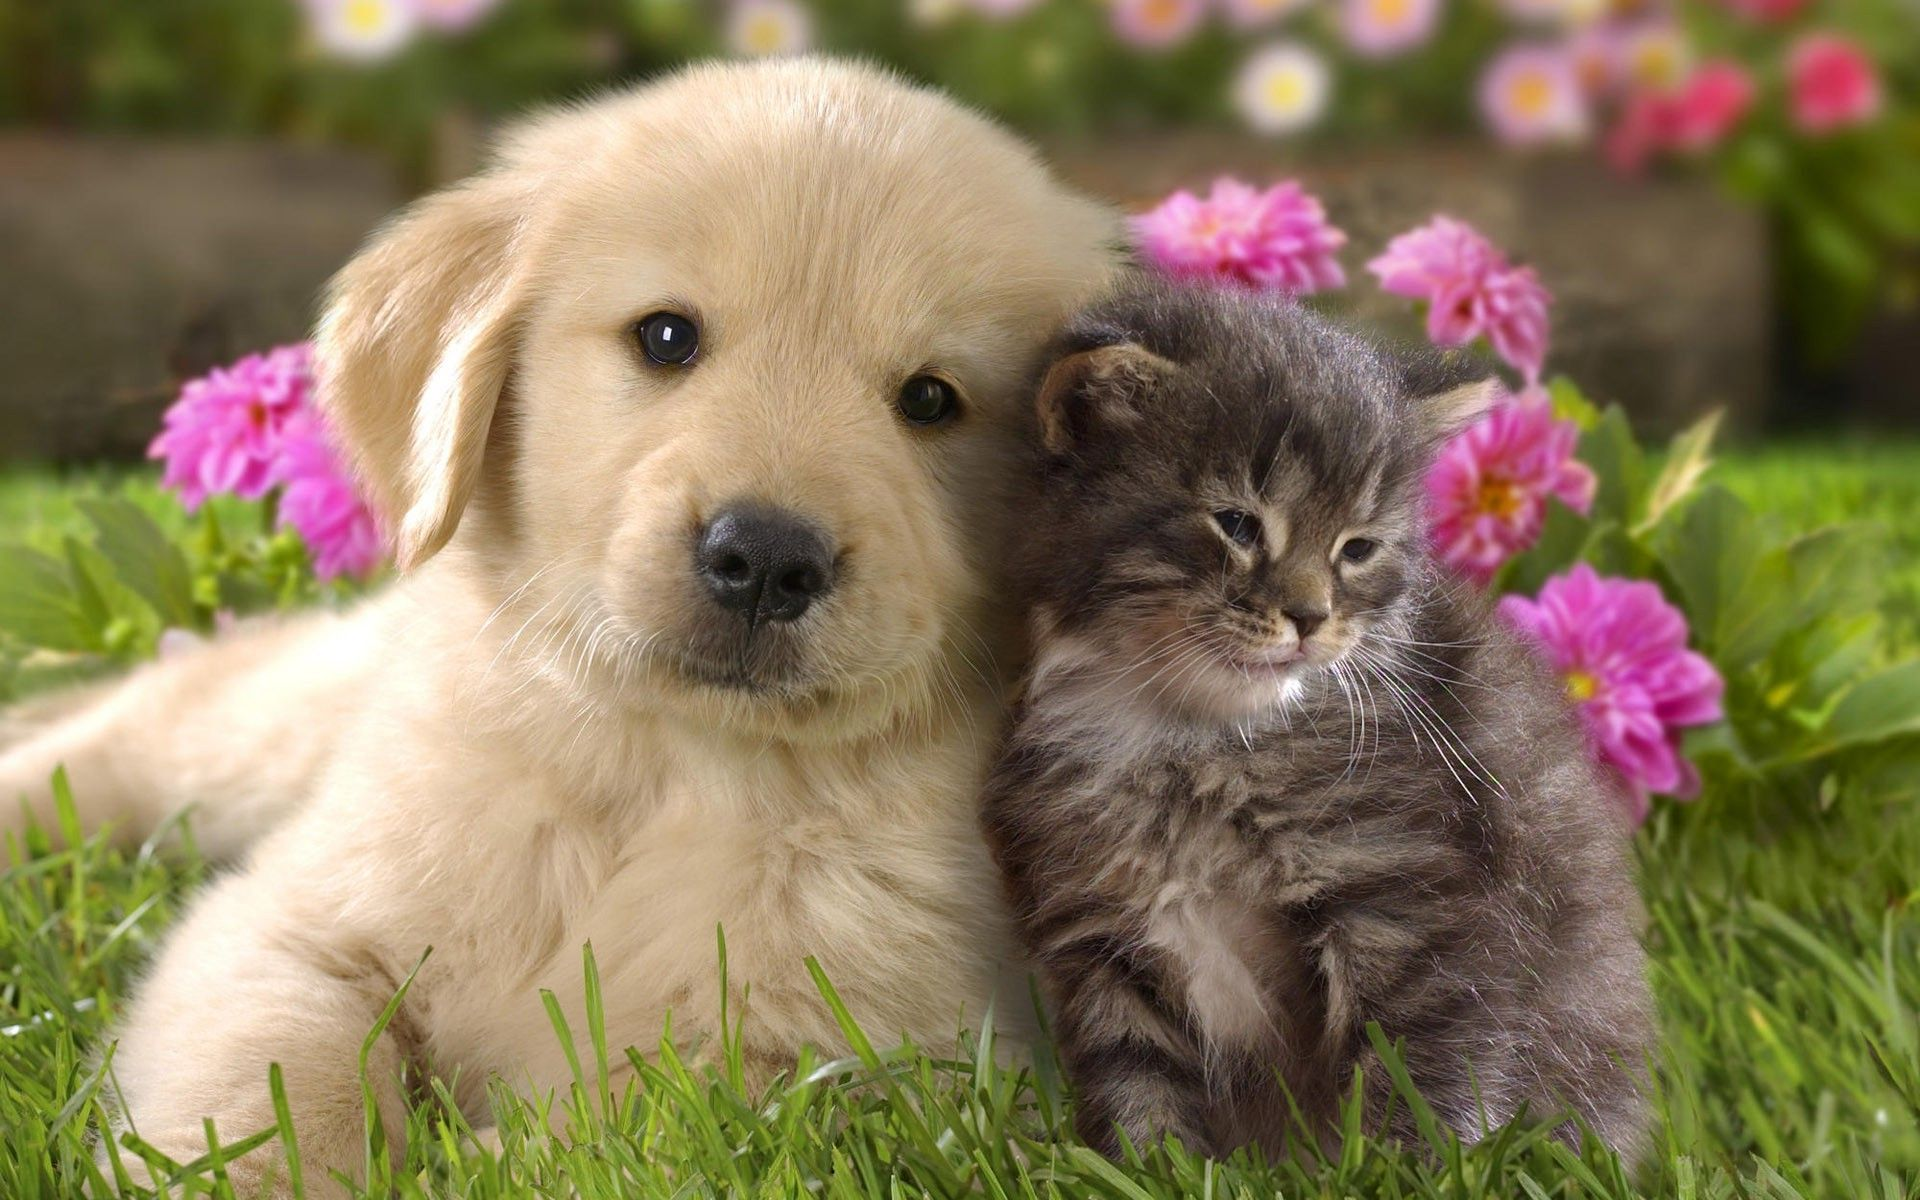 Free Cute Dog And Cat Wallpaper Hd In 2020 Cute Cats And Dogs Kittens And Puppies Cute Dogs